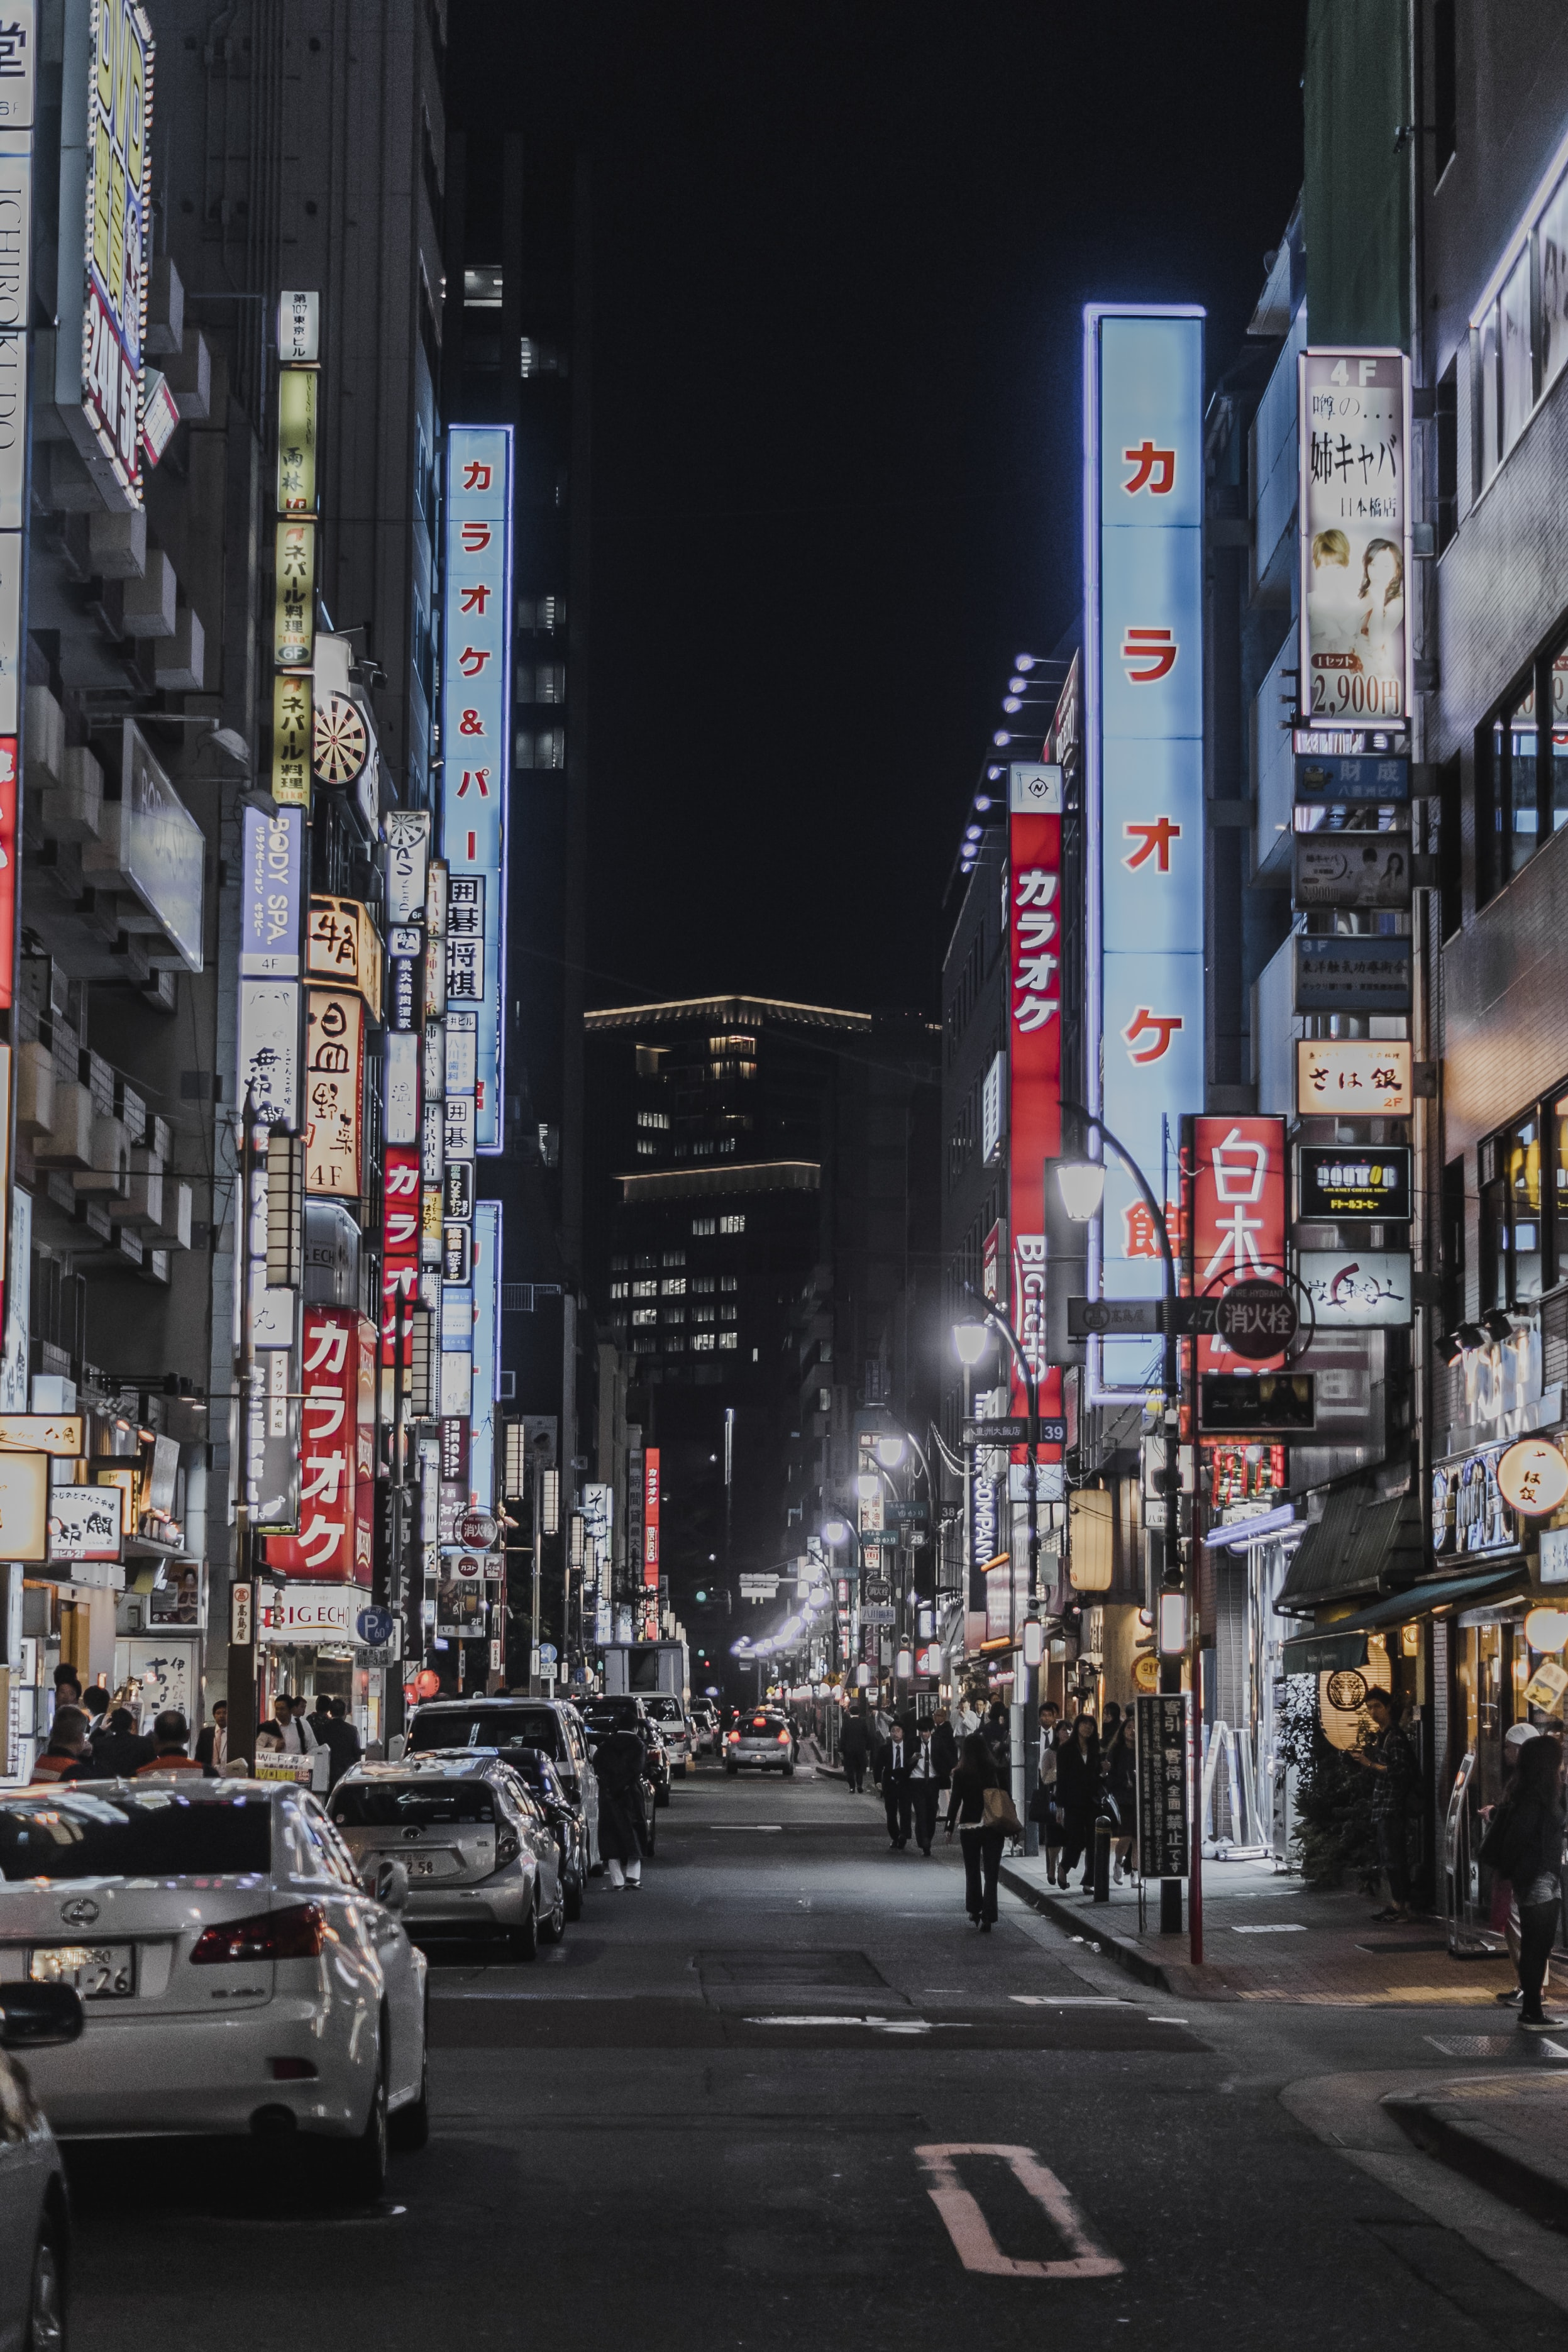 Bright neons and advertisements in the streets of Shibuya, Tokyo